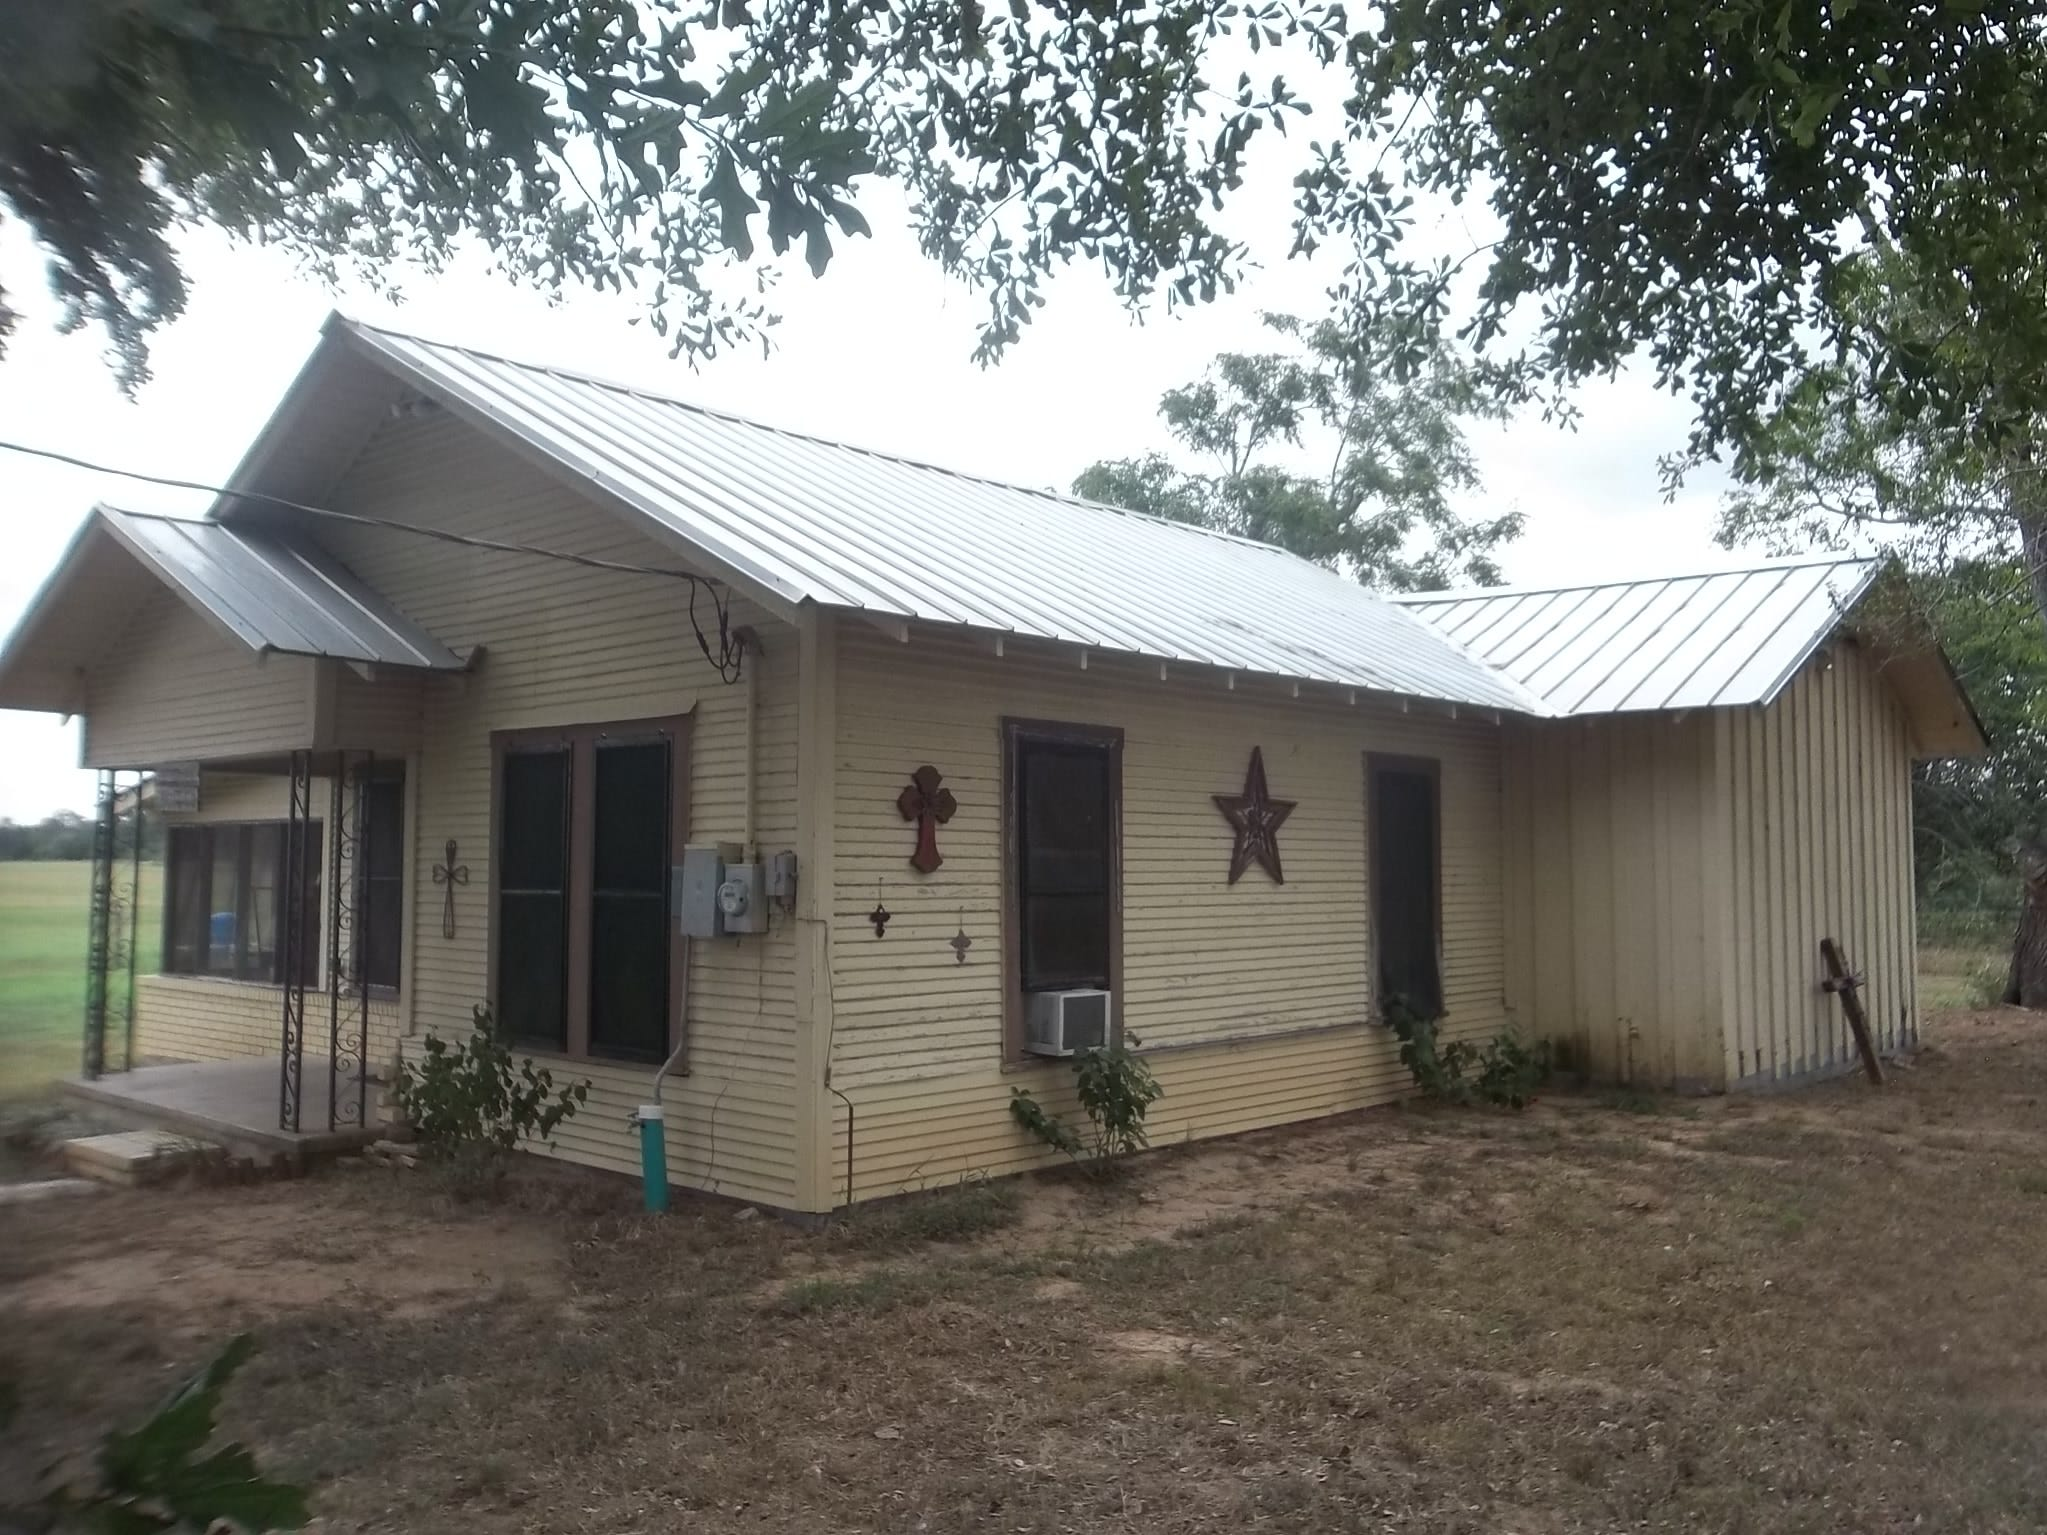 Eddie Tipton has since 1997 owned a nearly 55-acre parcel of land with a home nearFlatonia, Texas. He still owns the property. It's current market value is $365,380.